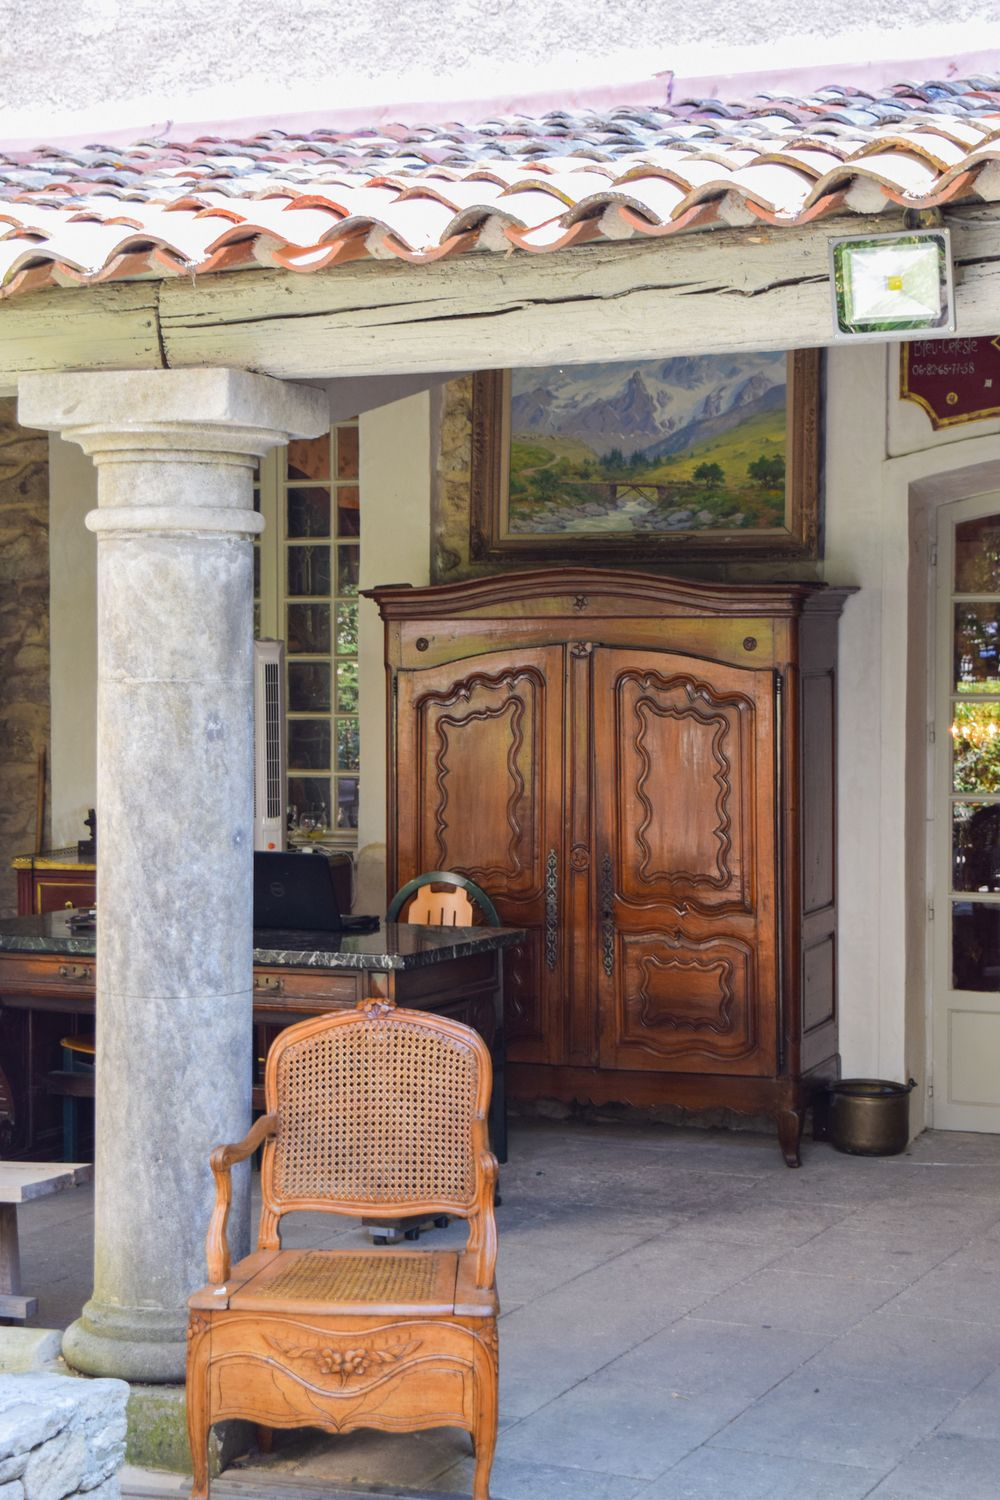 Antique French Furniture In L'Isle-Sur-La-Sorgue